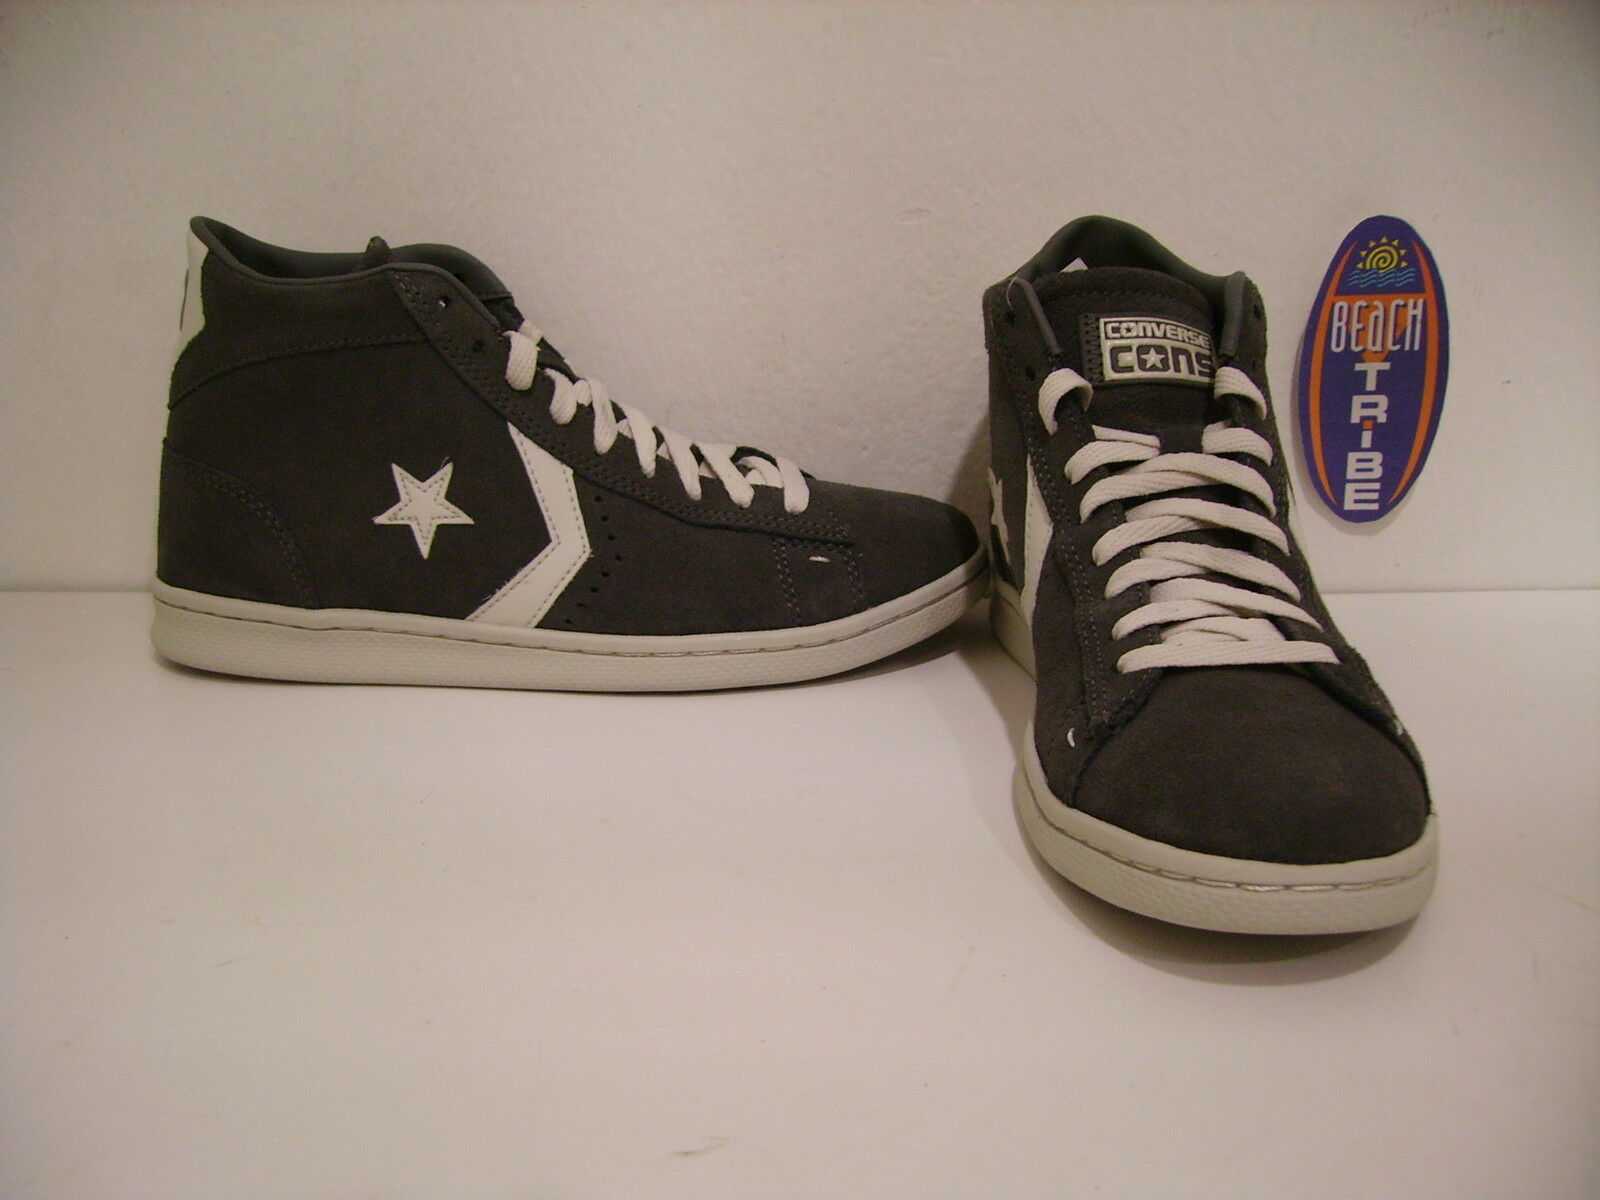 CONVERSE chaussures UNISEX SNICKERS ALTE 137714C PRO LEATHER LP CHARCOAL VAP GRIG 40